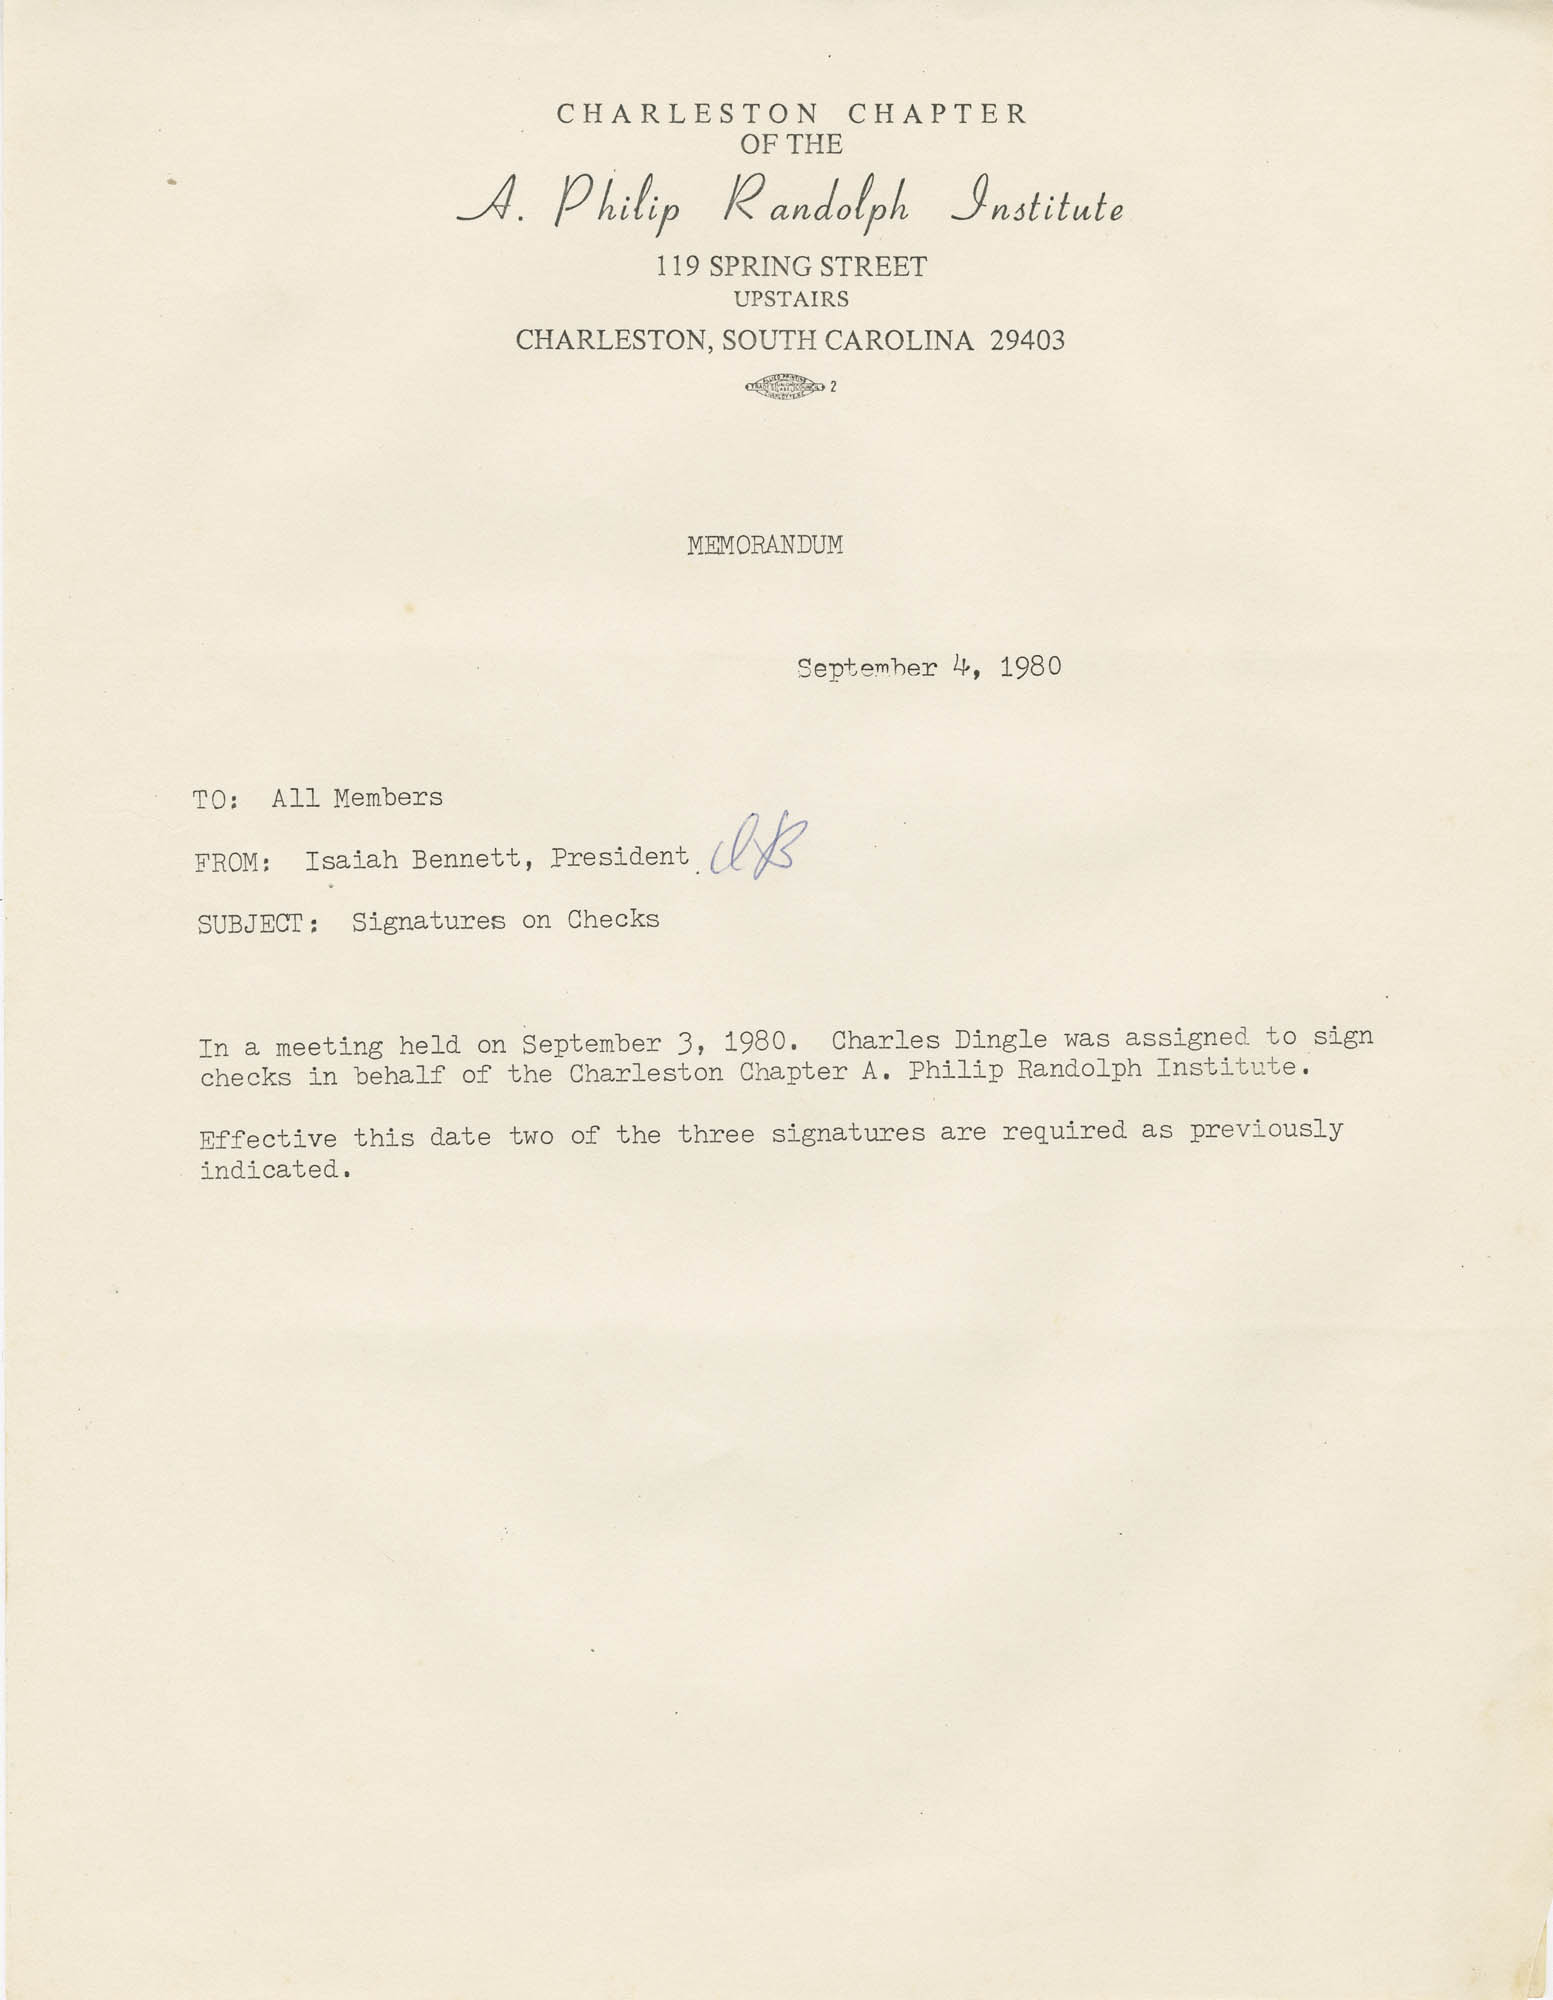 Memorandum granting Charles Dingle the ability to sign checks for the A. Philip Randolph Institute